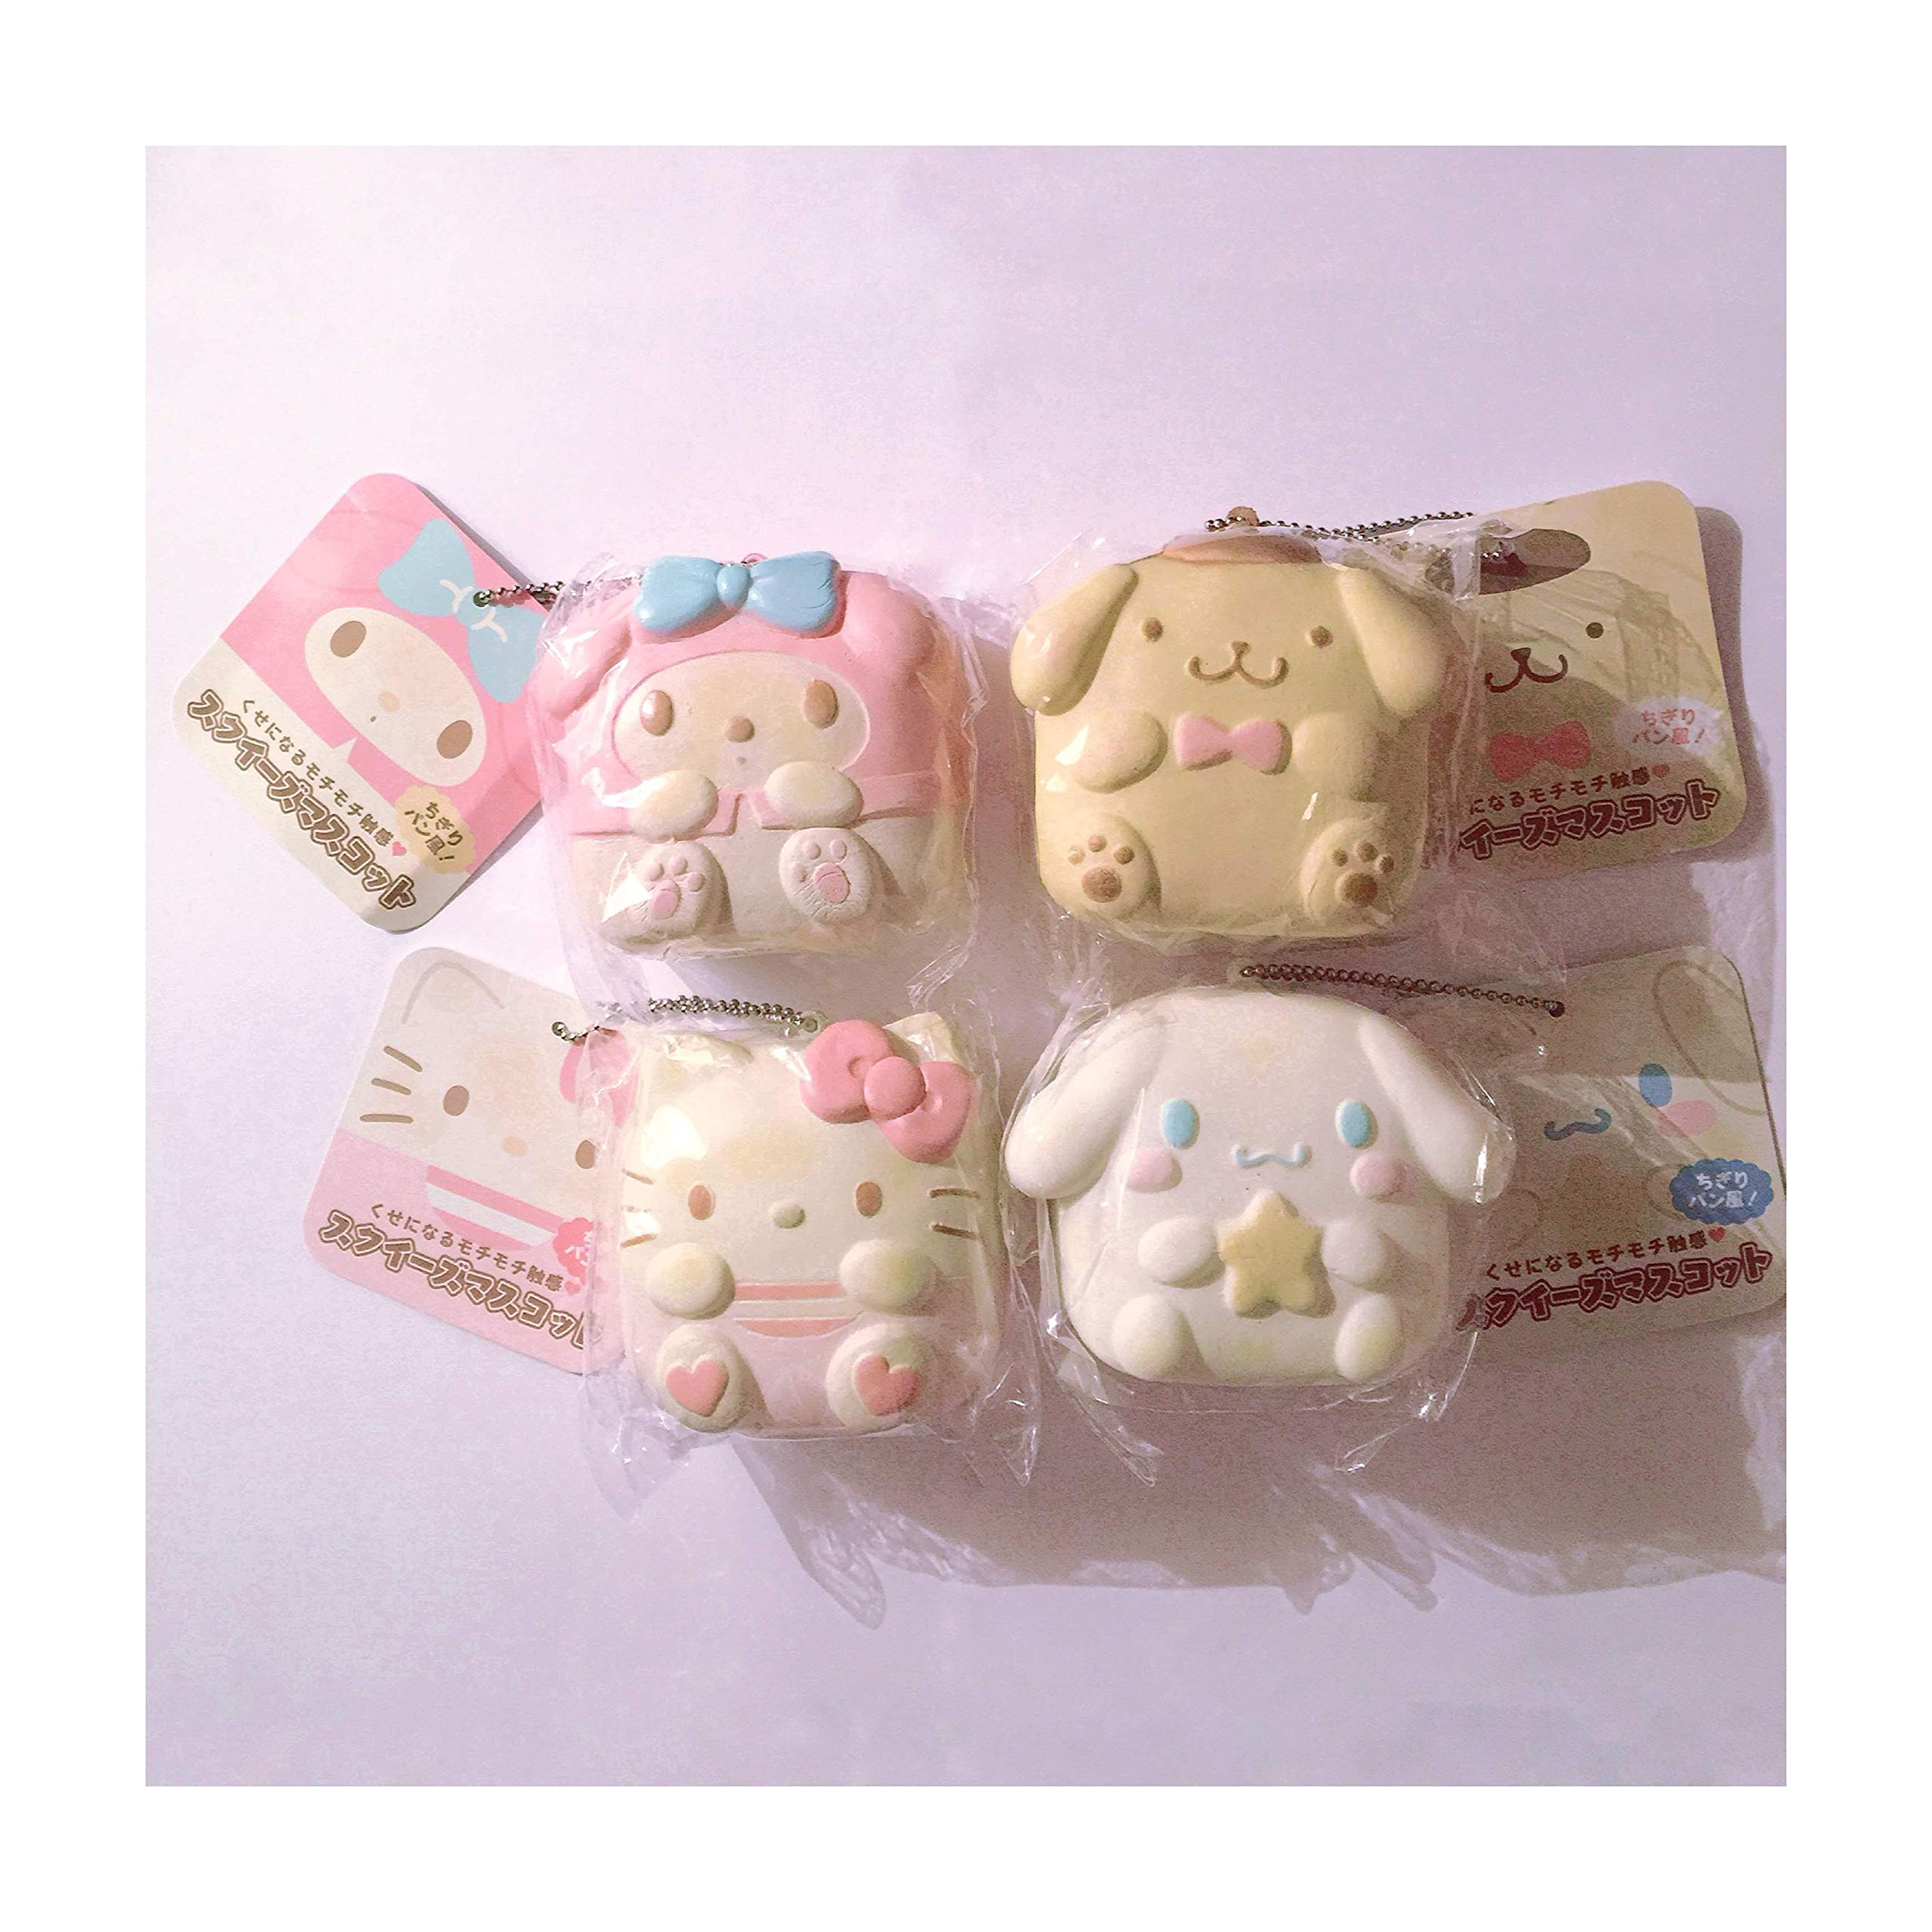 (4) Chigiri Sanrio License Squishies